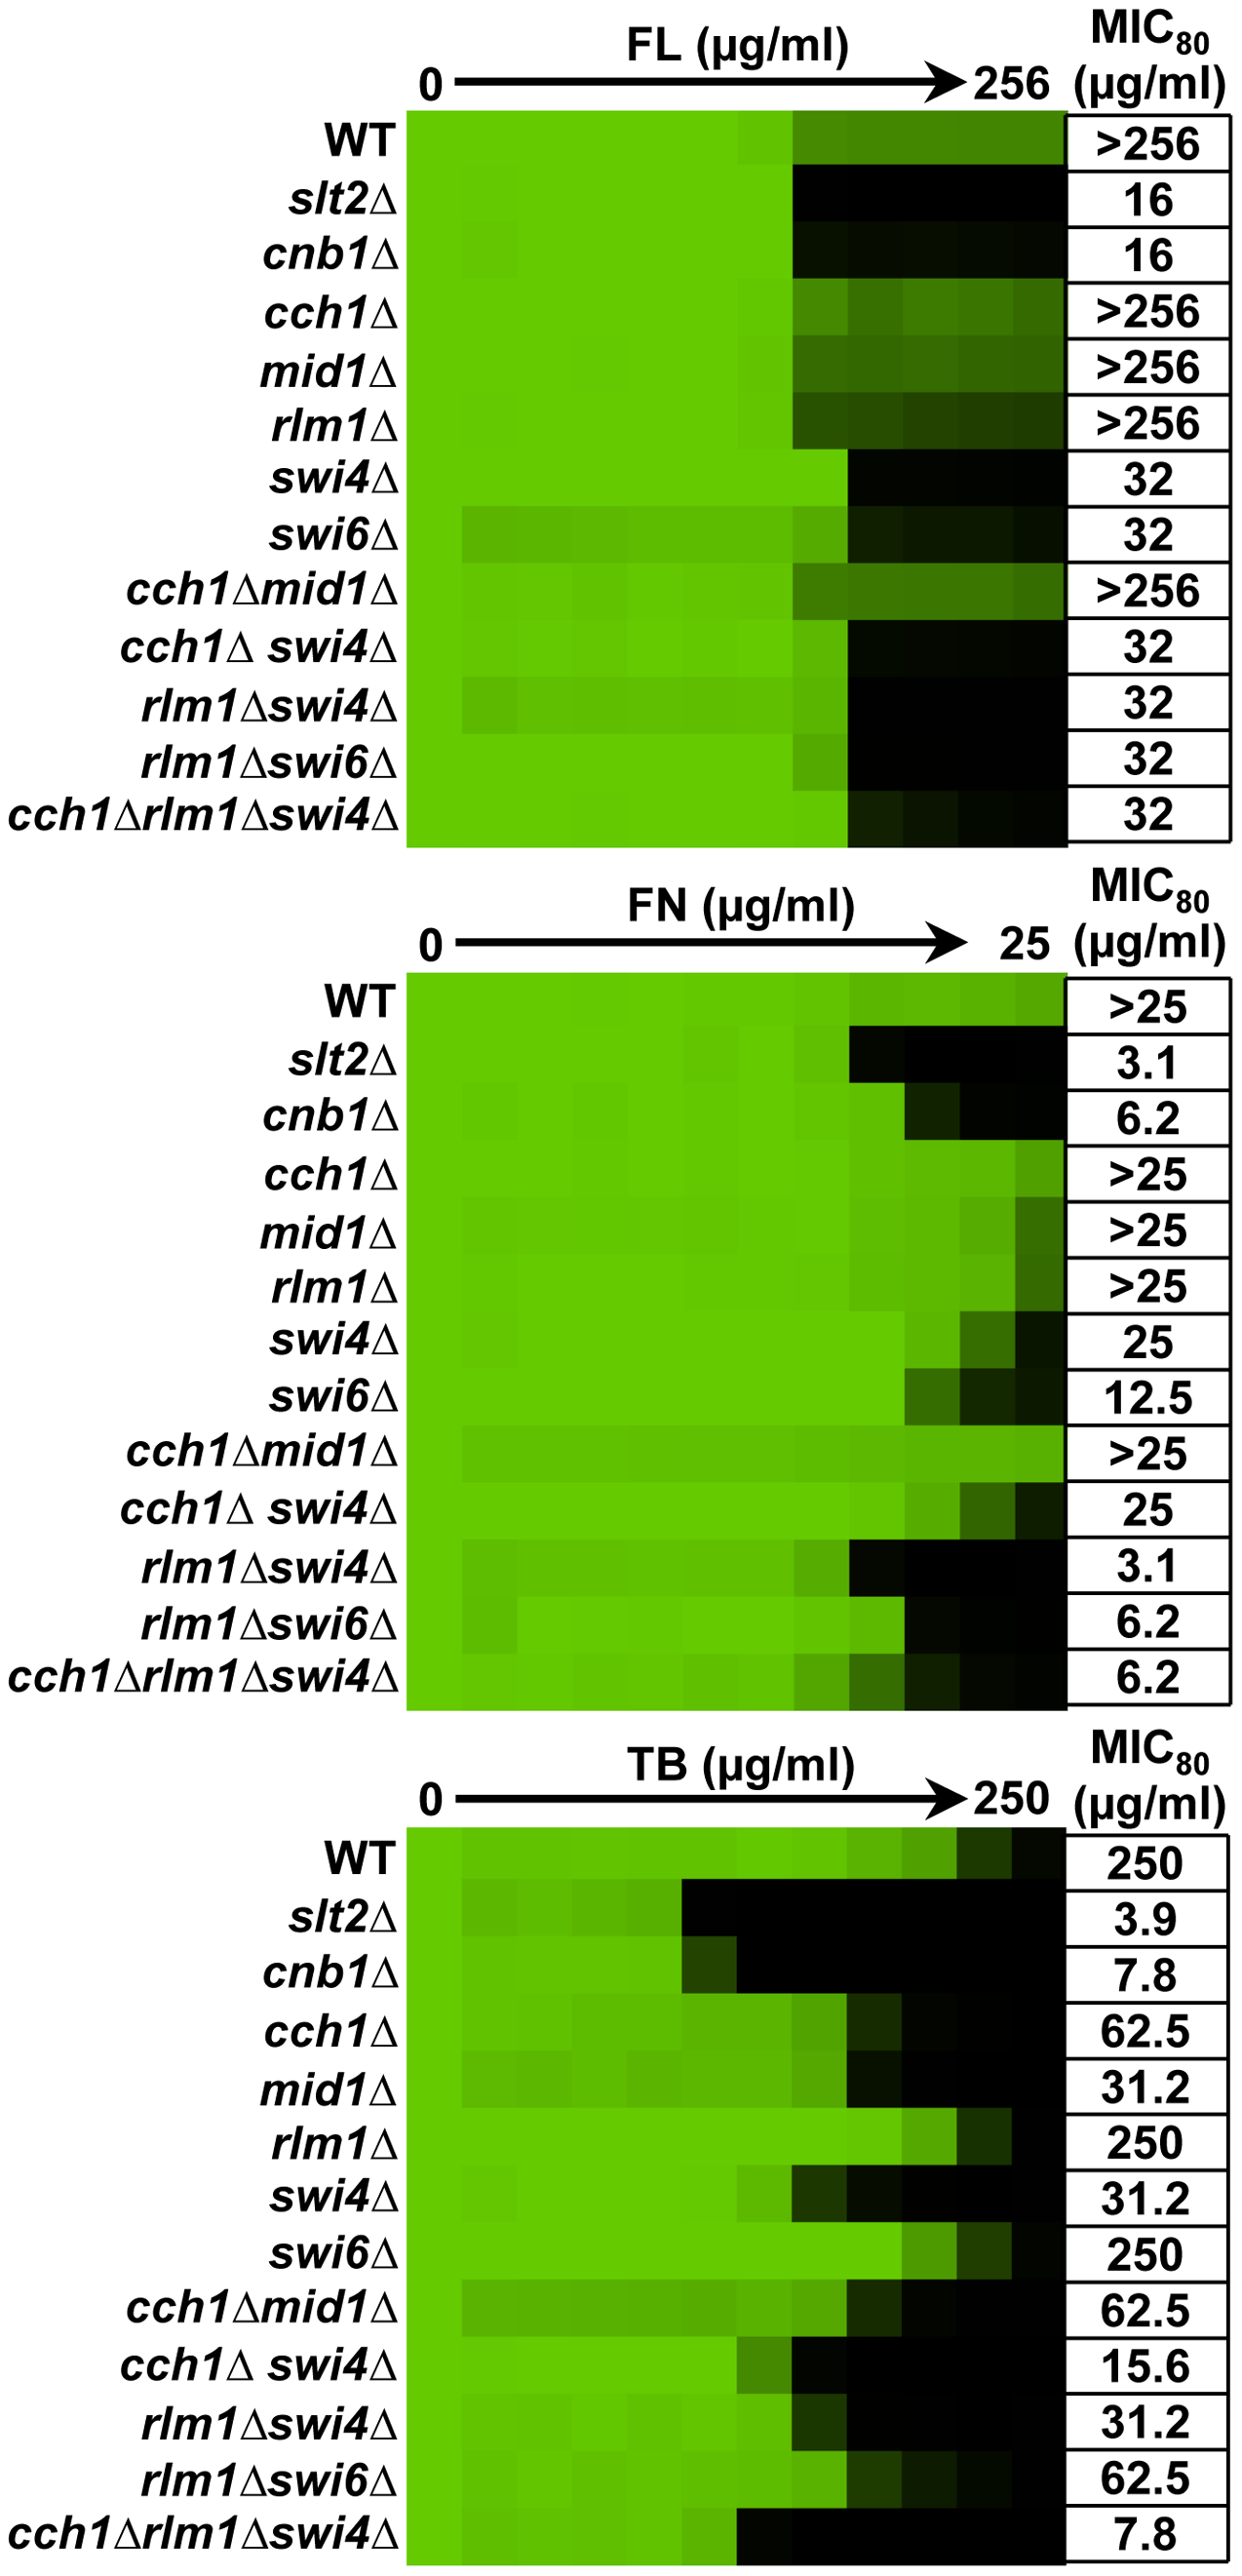 Distinct downstream effectors are important for tolerance of <i>S. cerevisiae</i> to different ergosterol biosynthesis inhibitors.